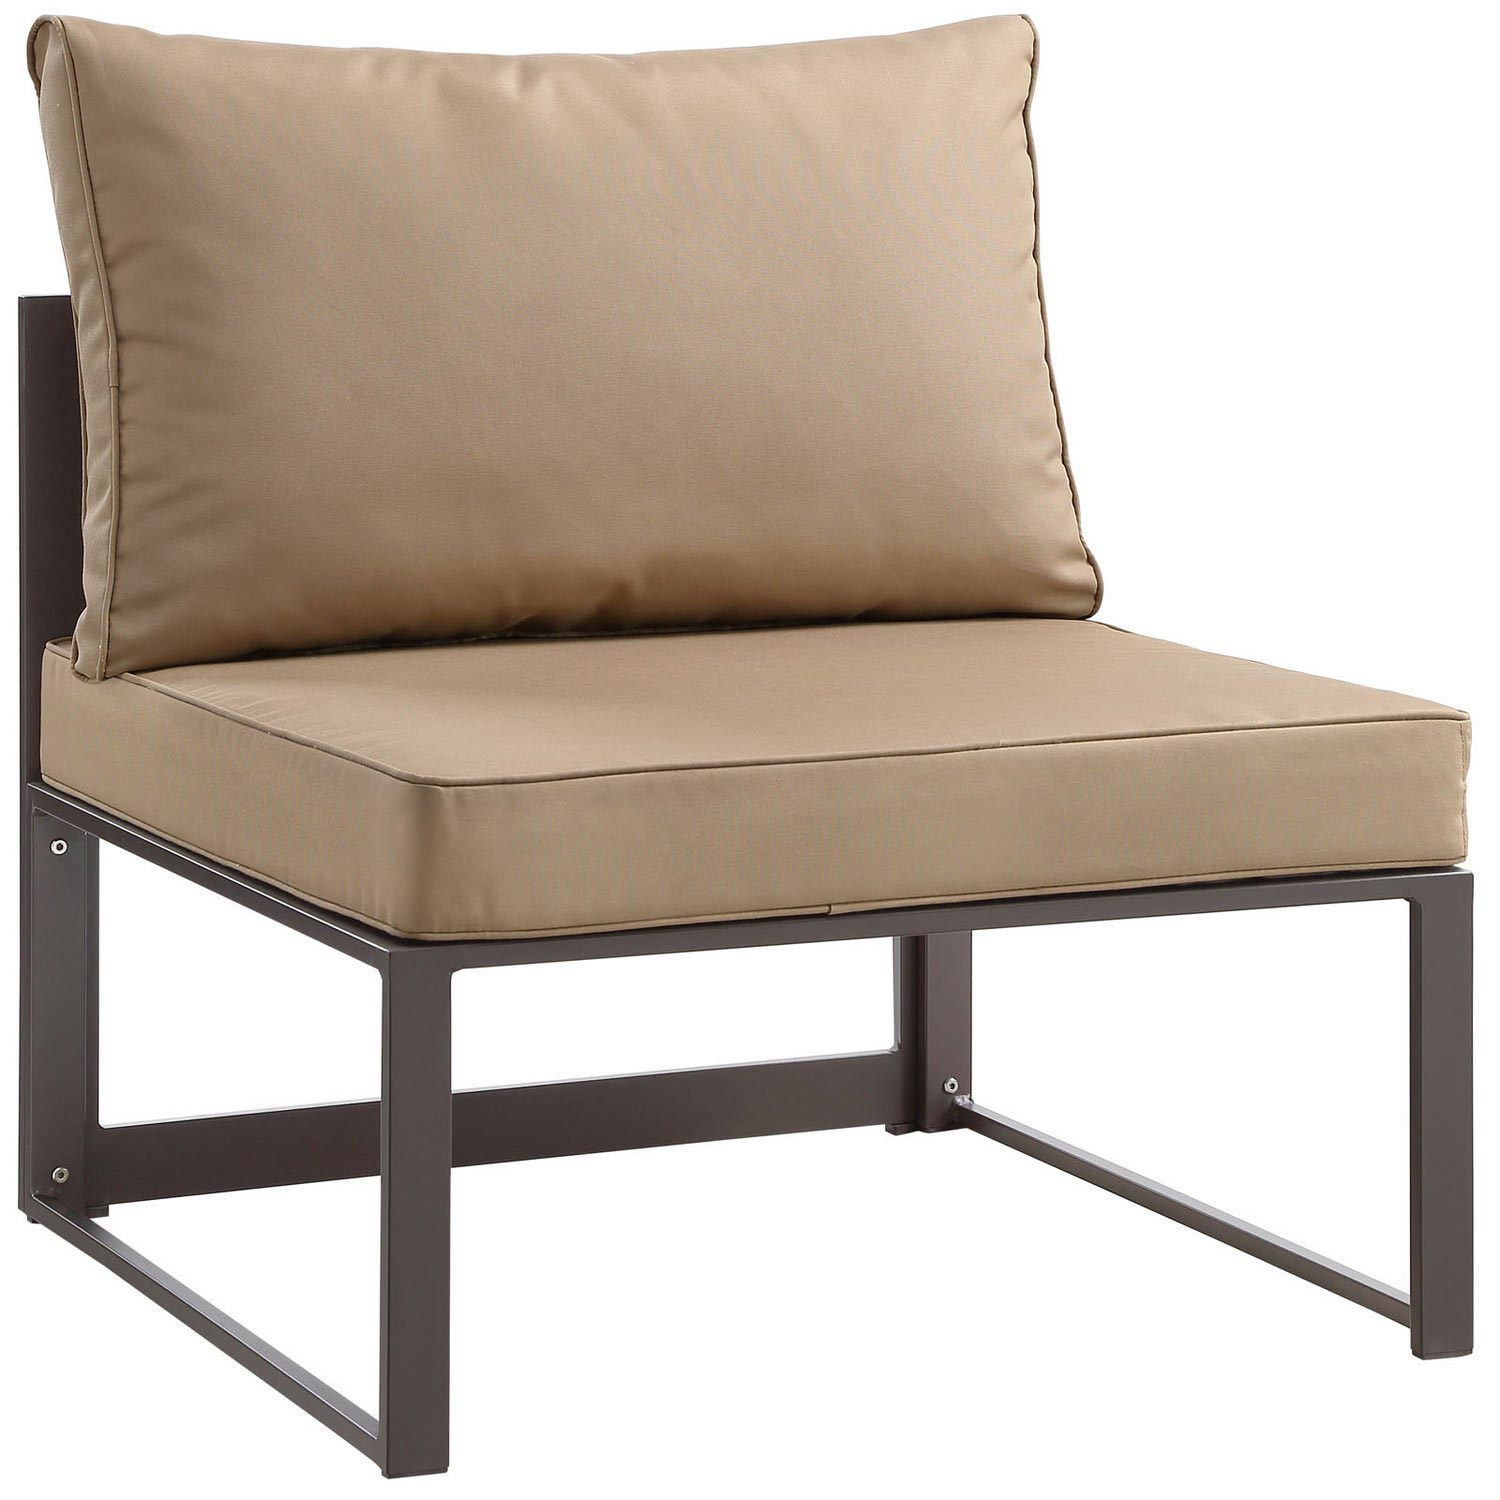 Modway Fortuna 8 Piece Outdoor Patio Sectional Sofa Set Brown